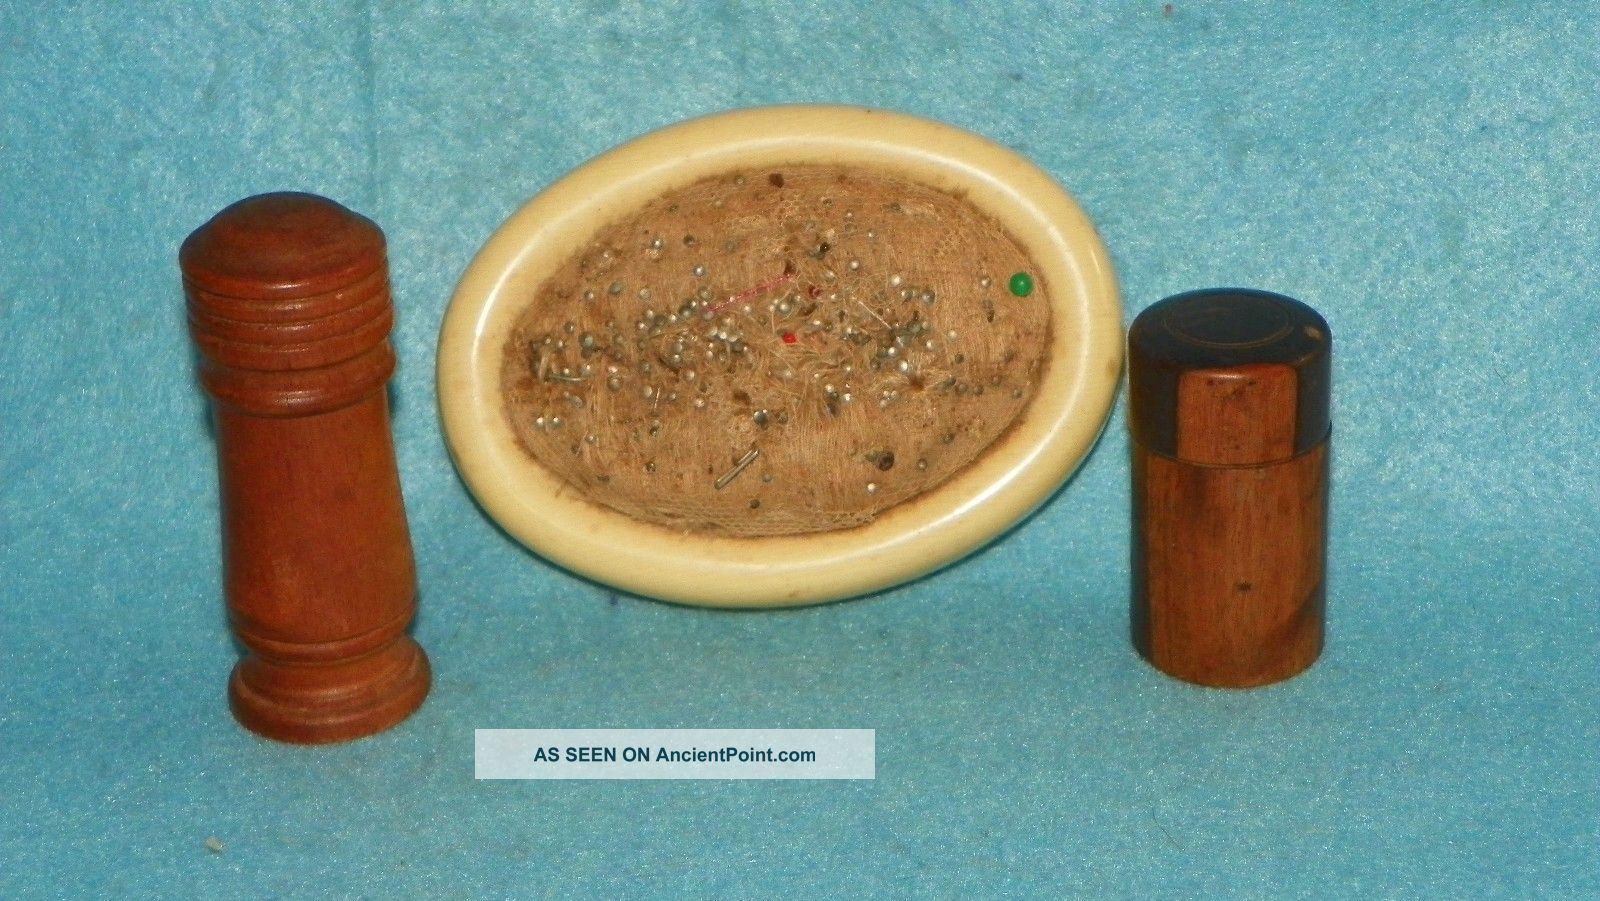 (2) Antique Victorian Wooden Needle Cases Treenware Vintage Sewing Collectibles Needles & Cases photo